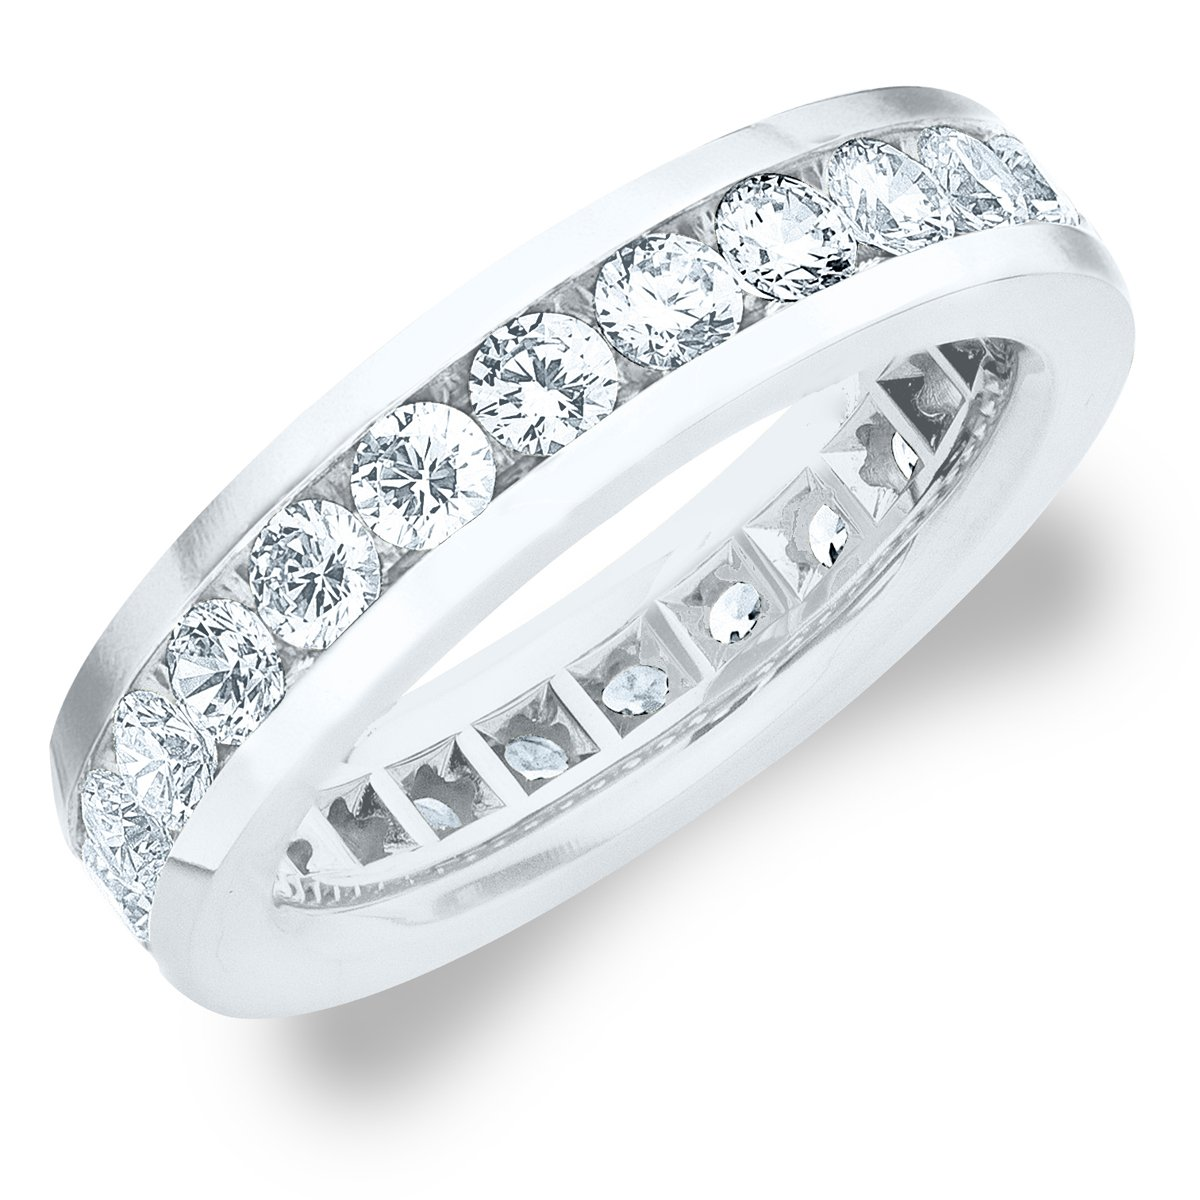 3.0 CT Men's Diamond Eternity Ring in 18K White Gold, Handsome Mens Wedding Ring (G-H Color / SI Clarity) Size 8.5 by Eternity Wedding Bands LLC